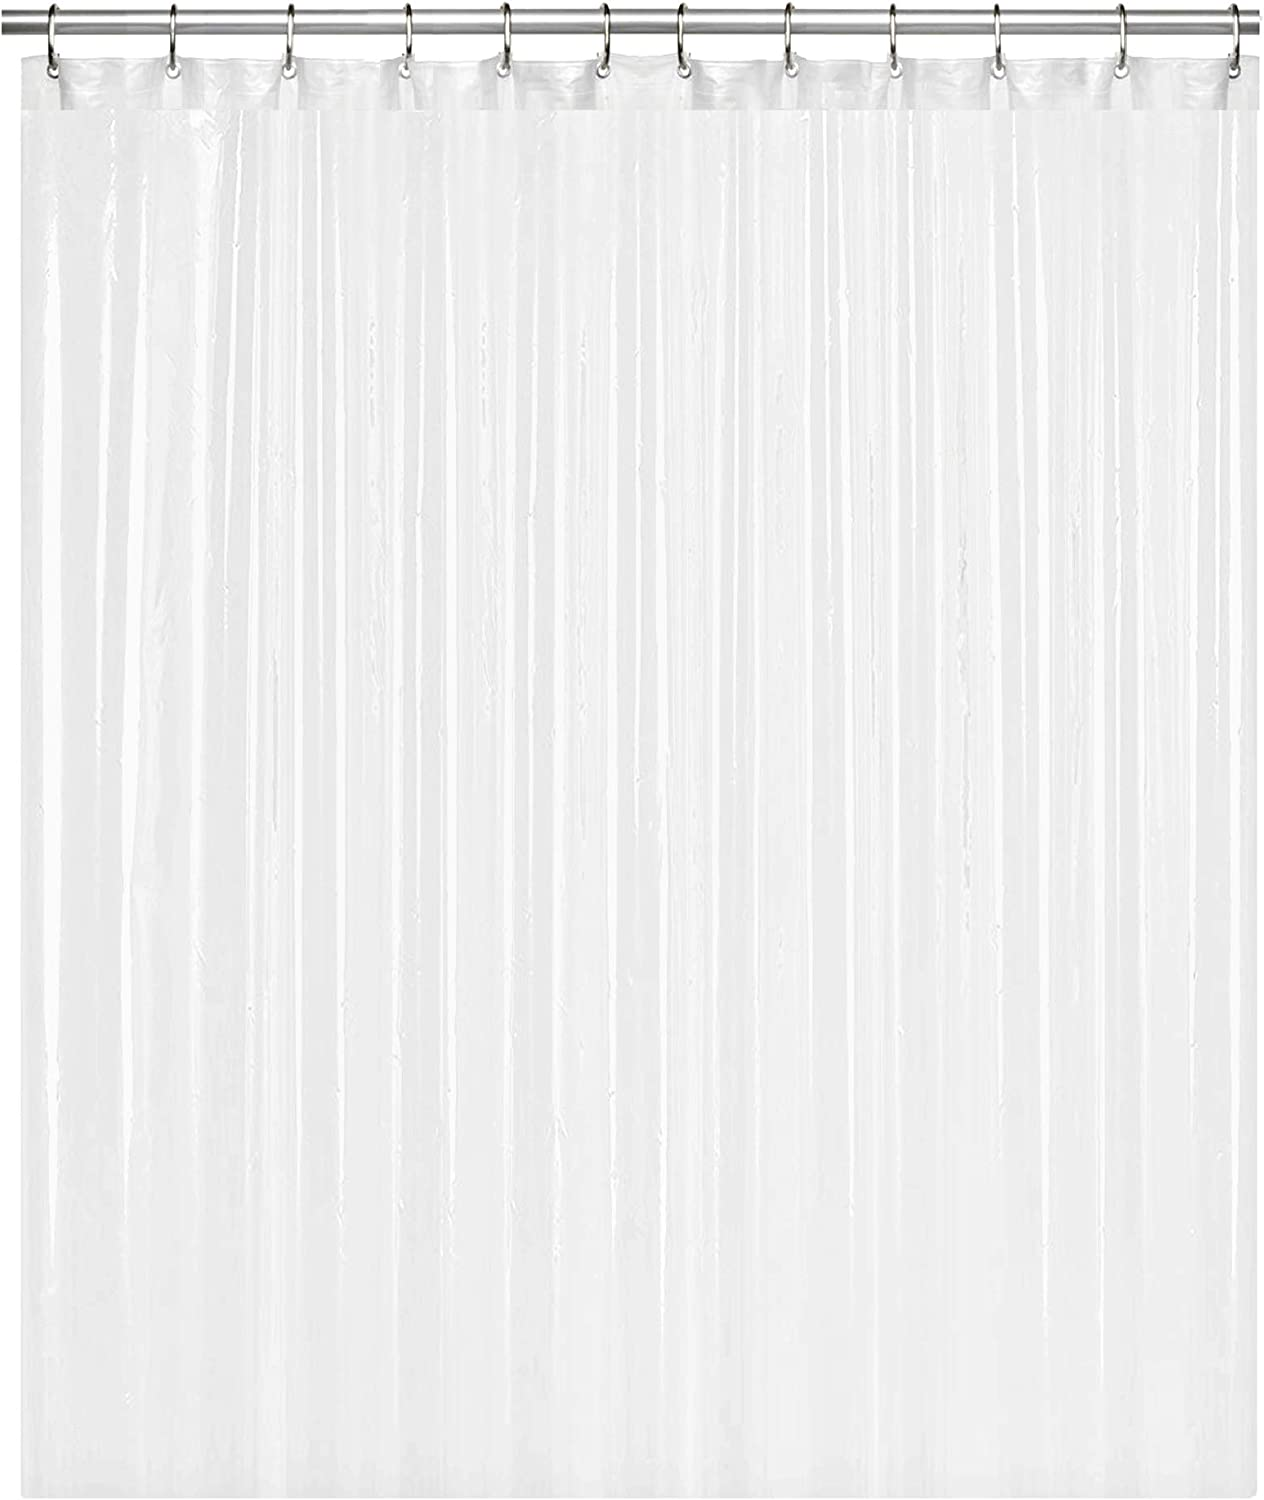 Liba Peva 8g Bathroom Shower Curtain Liner 72 W X 72 H Frosted 8g Heavy Duty Waterproof Shower Curtain Liner Kitchen Dining